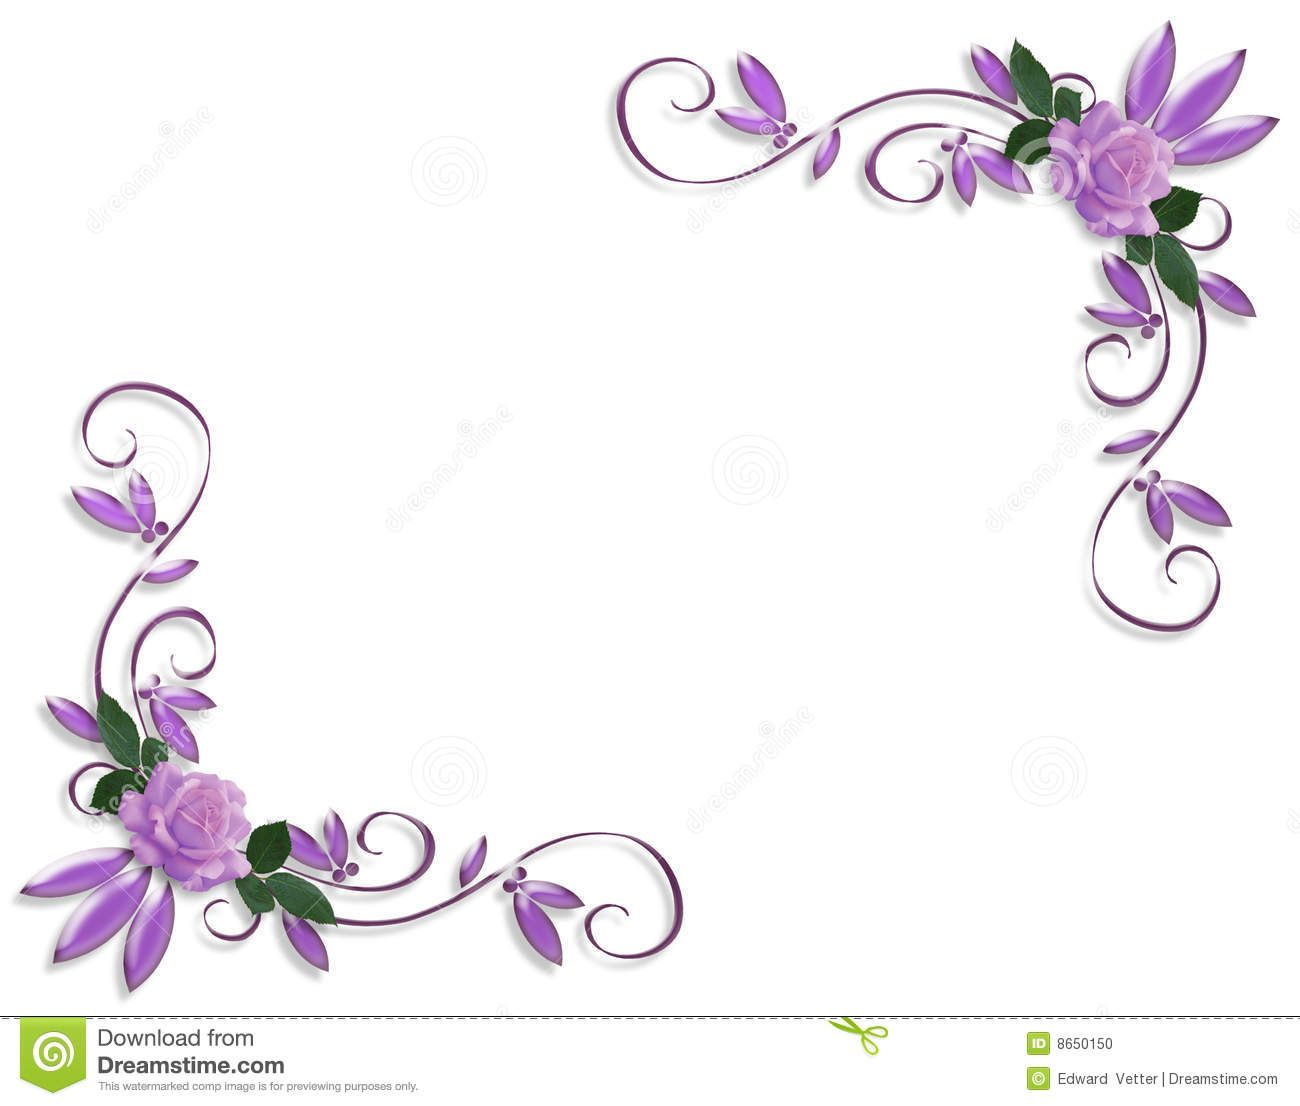 Purple roses corner border designs | Wedding Invitation ...